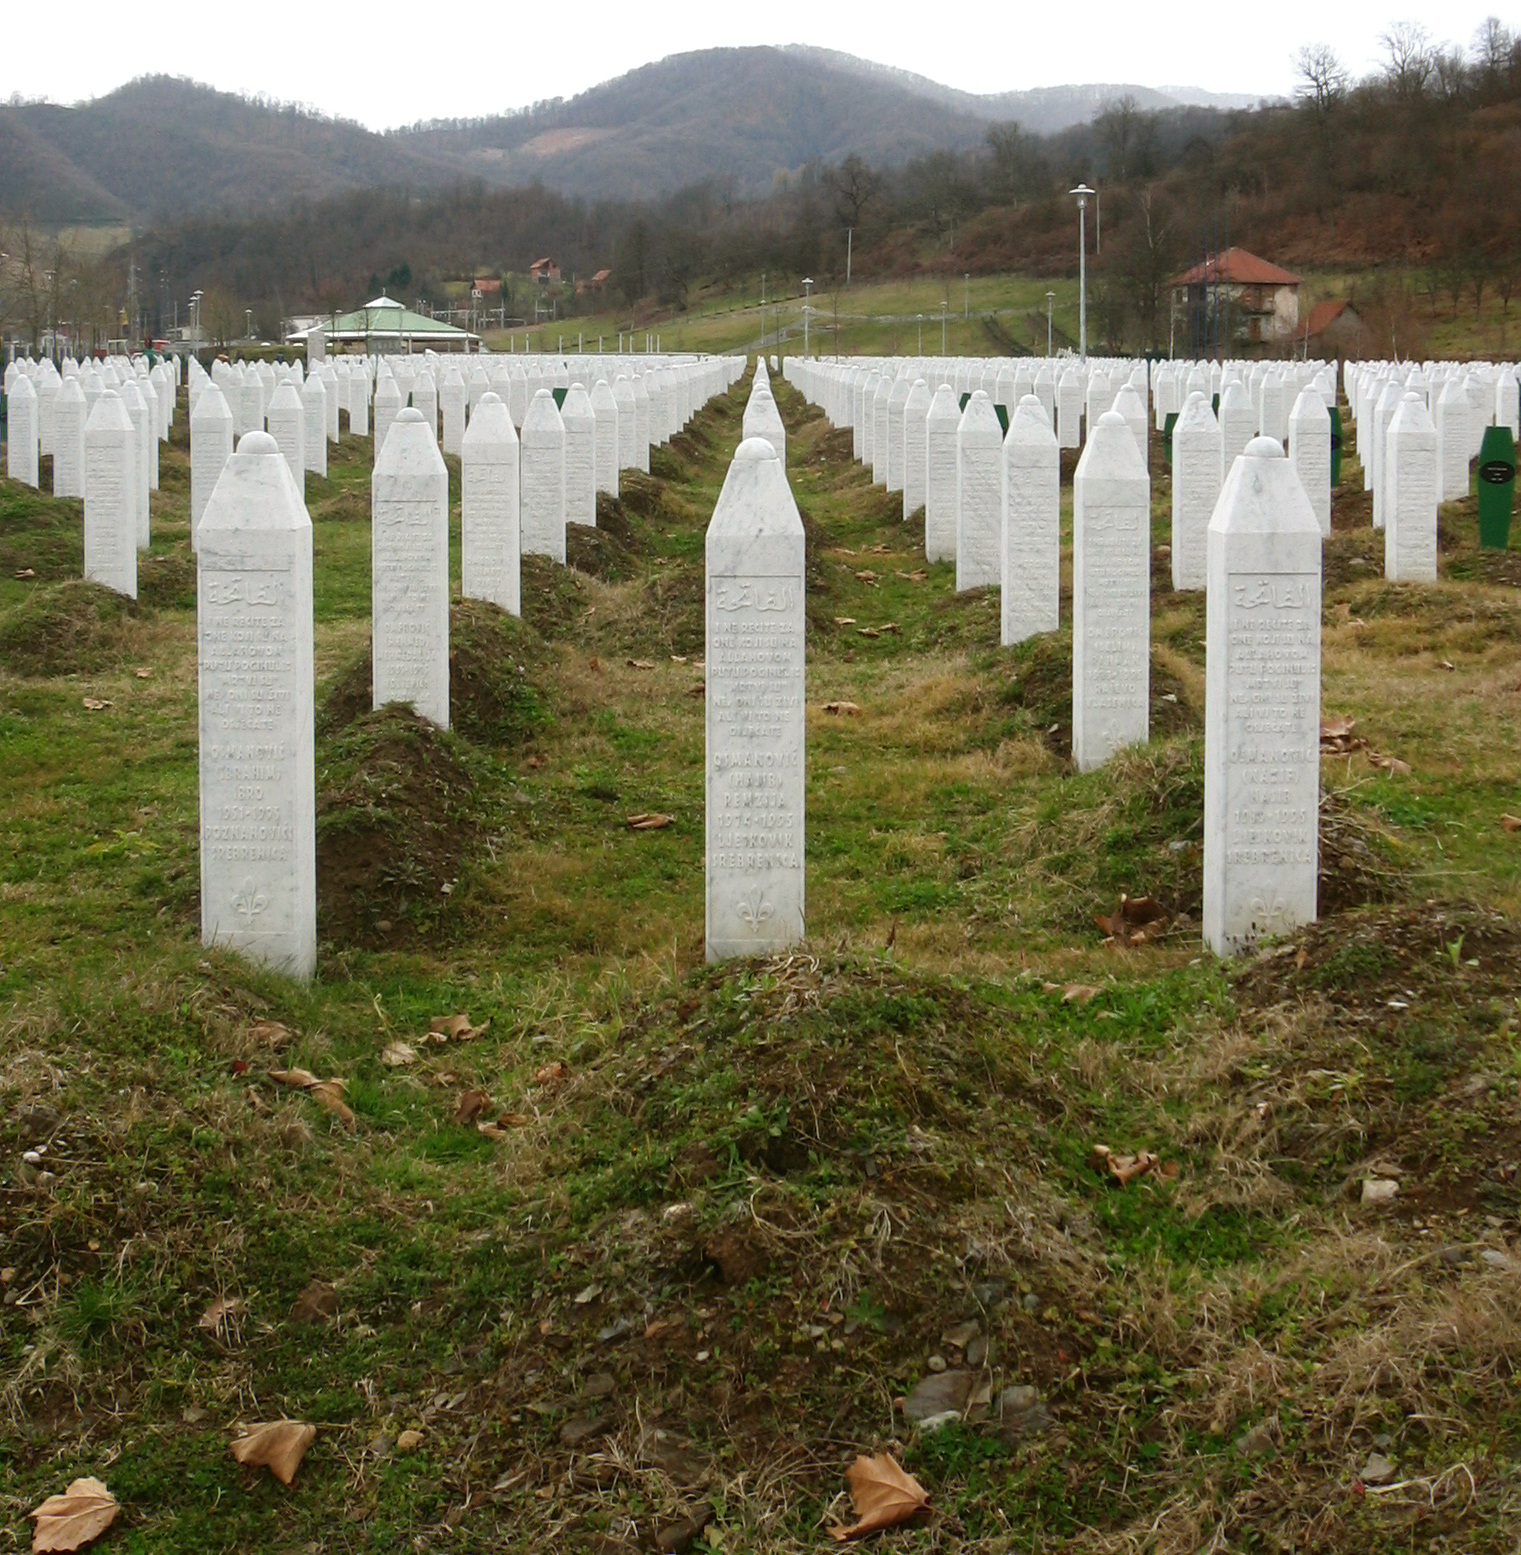 Memorial Photos For Gravestones http://en.wikipedia.org/wiki/File:Srebrenica_massacre_memorial_gravestones_2009_3.jpg